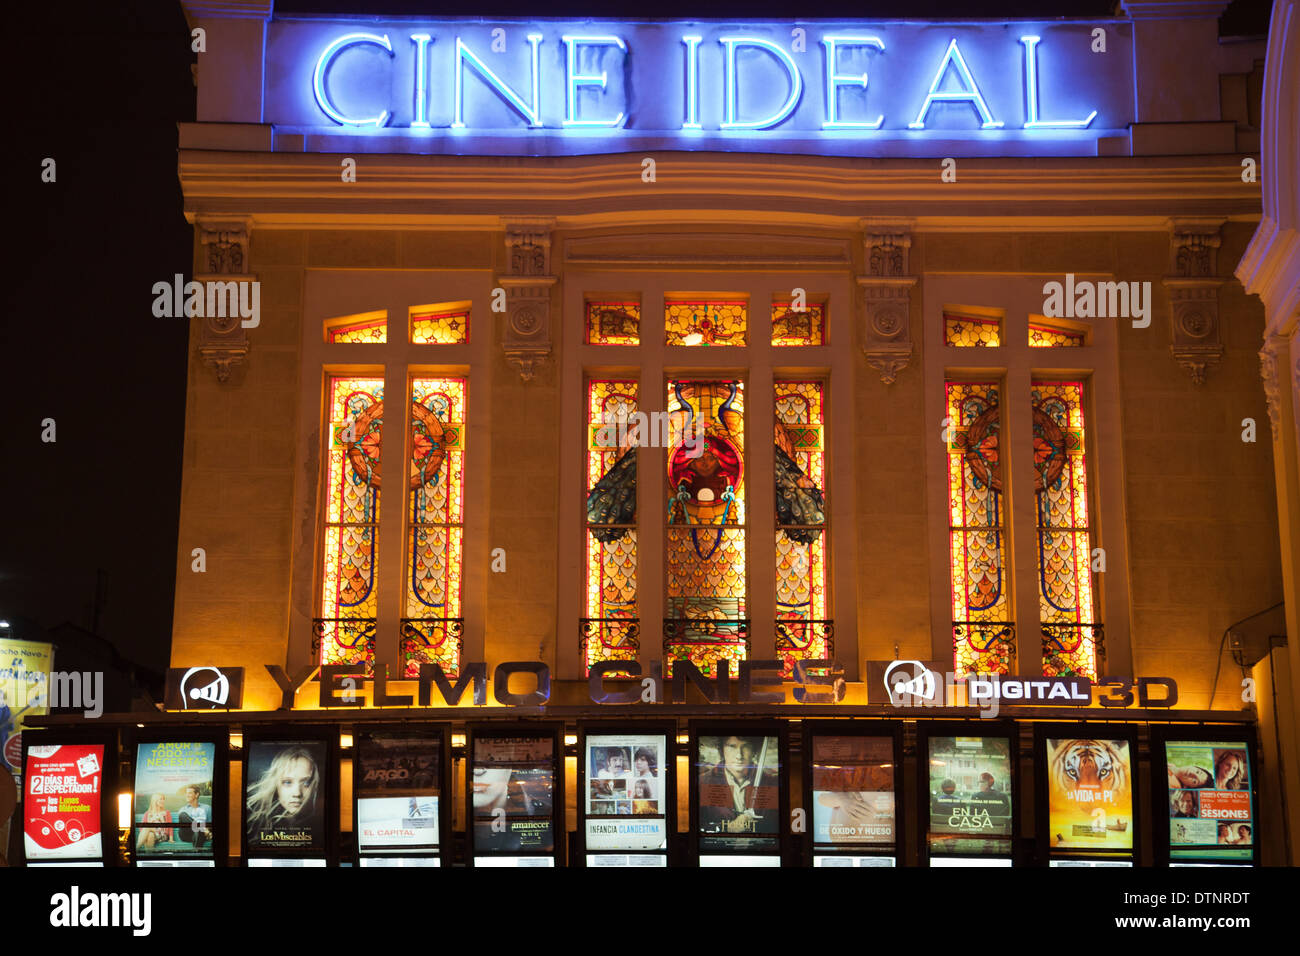 Cine Ideal in Madrid - Stock Image